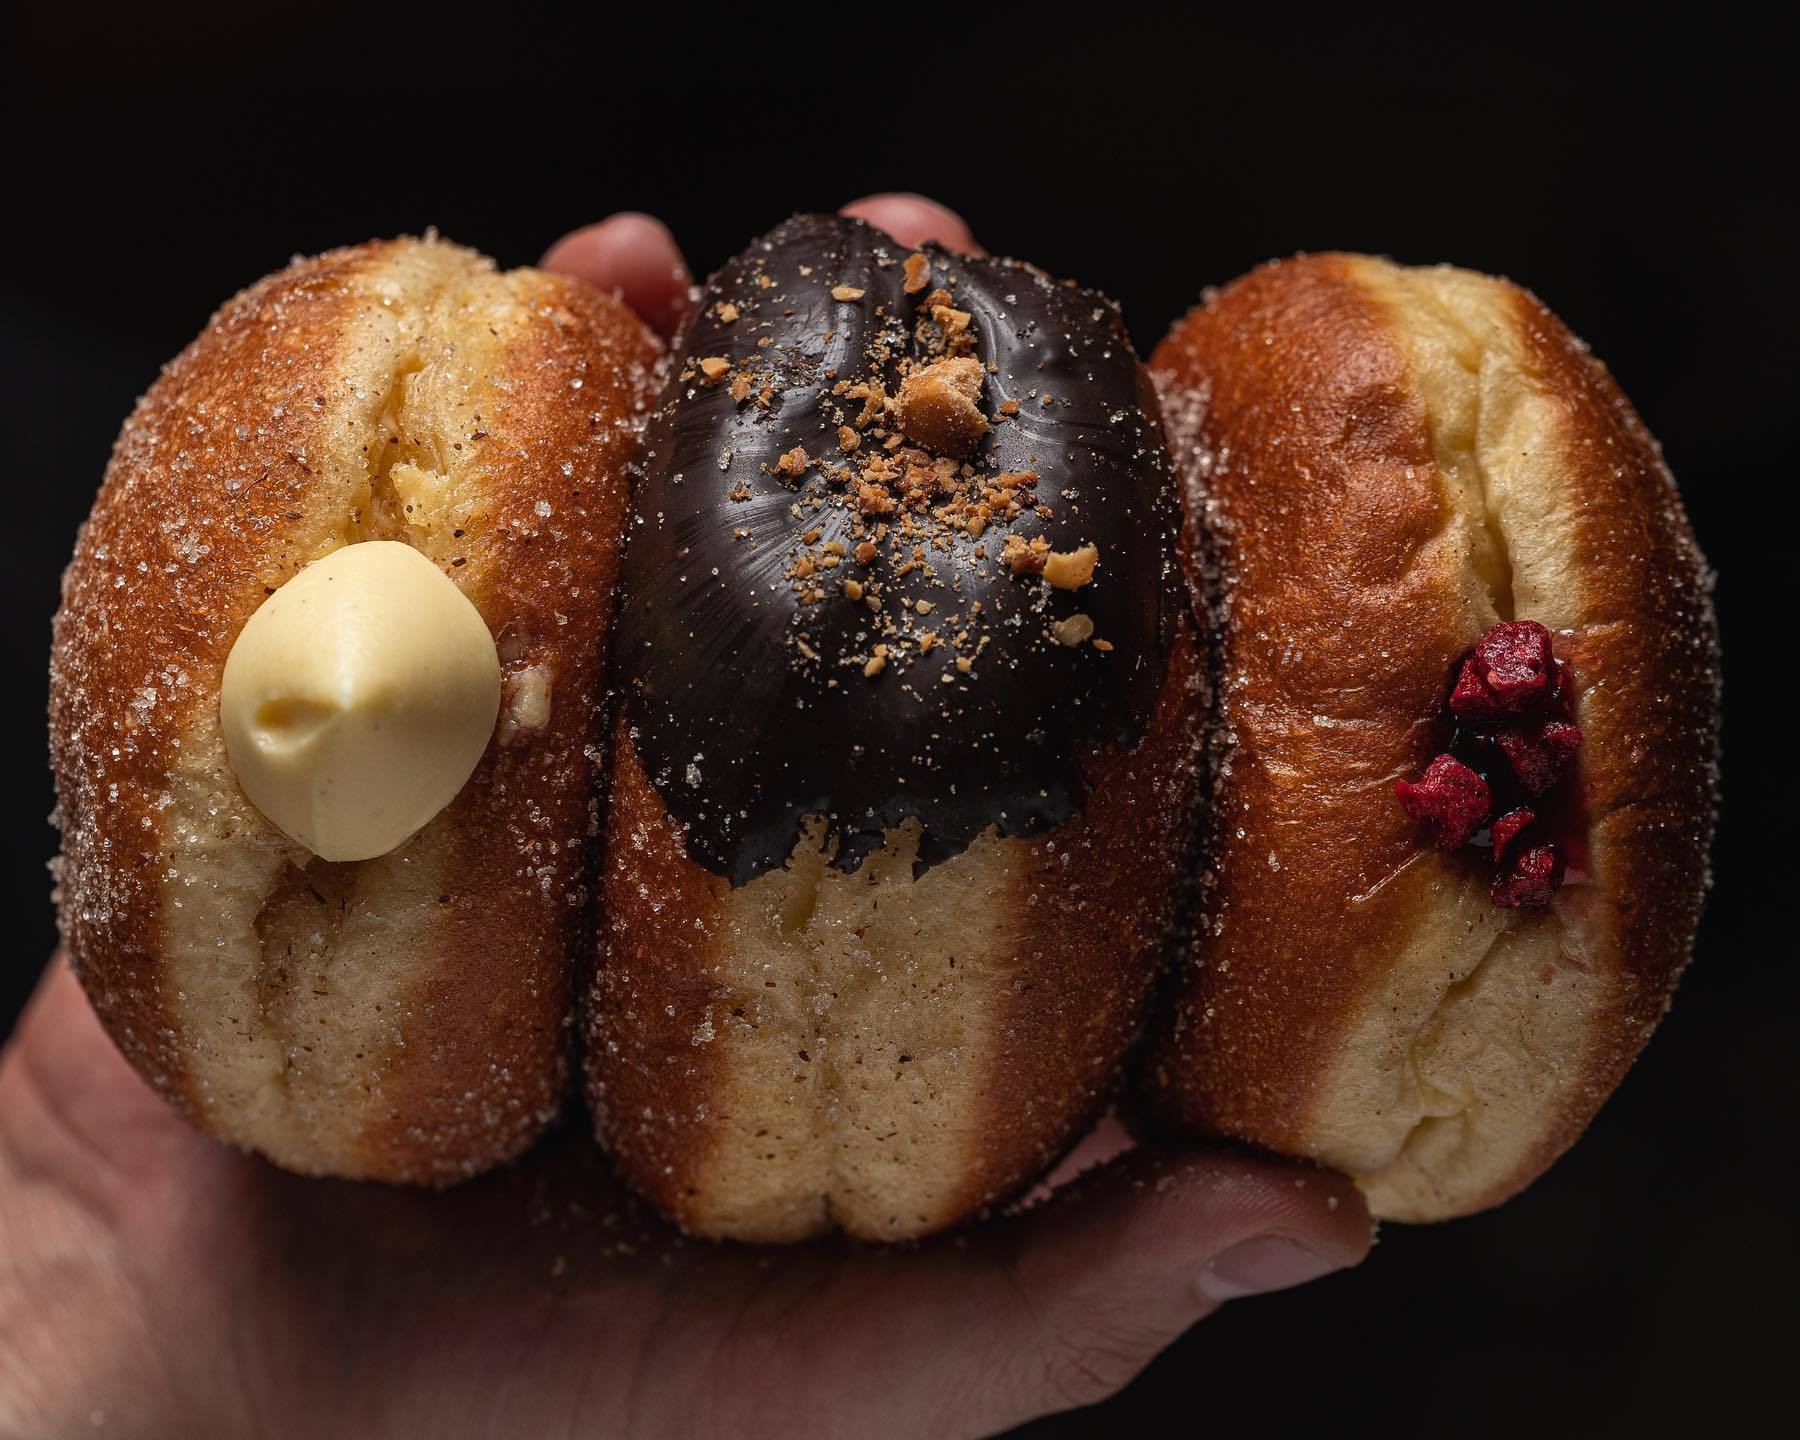 Best places to get doughnuts in Hong Kong